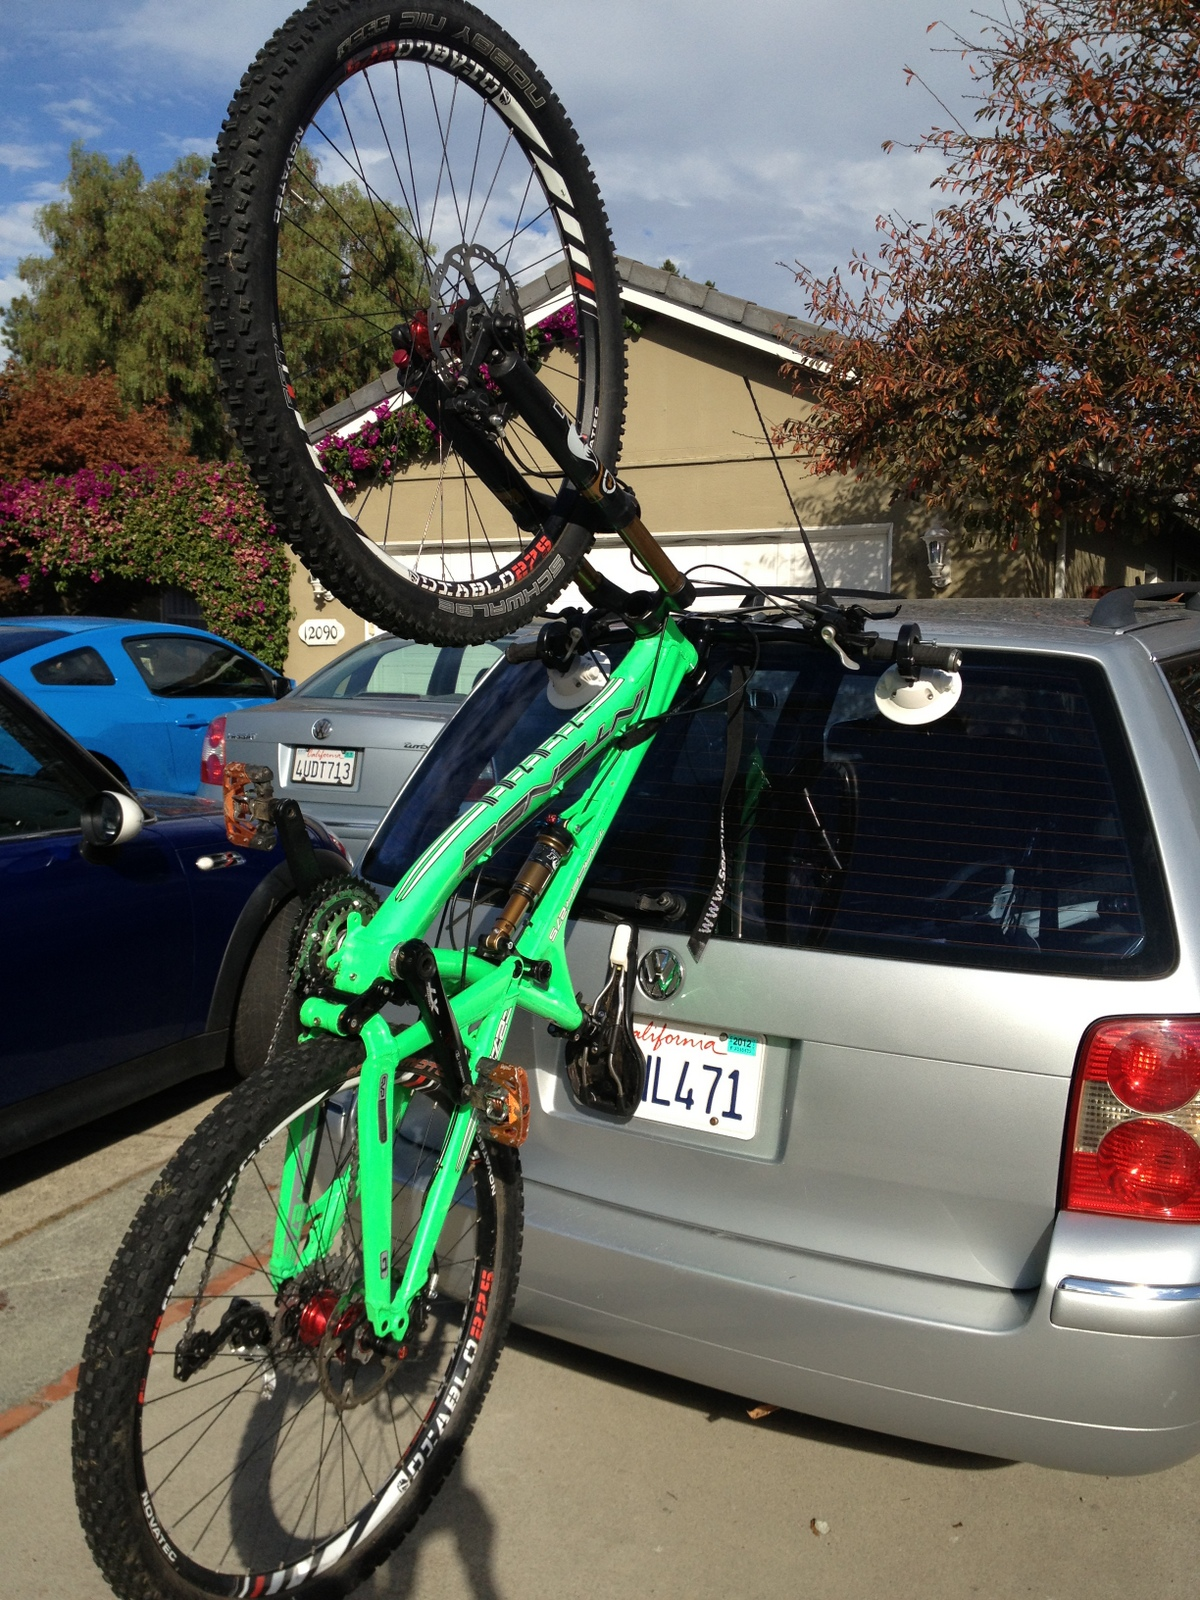 29Er Mountain Bike >> Seasucker Hornet Bike Rack First Impressions - Mountain ...